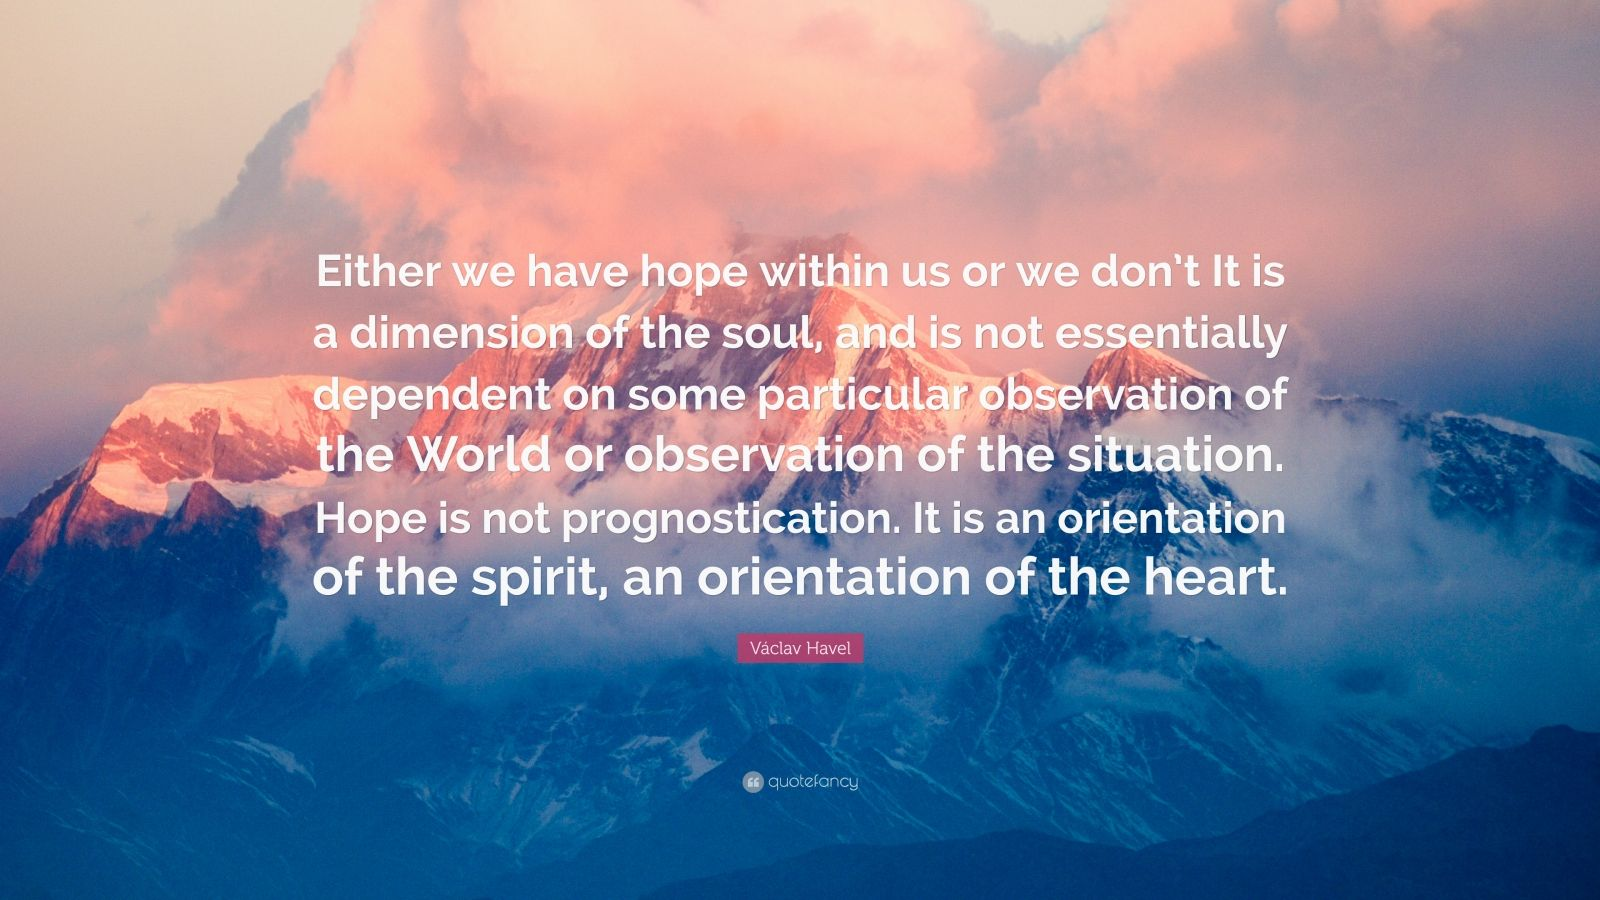 """Václav Havel Quote: """"Either we have hope within us or we don't It is a dimension of the soul, and is not essentially dependent on some particular observation of the World or observation of the situation. Hope is not prognostication. It is an orientation of the spirit, an orientation of the heart."""""""